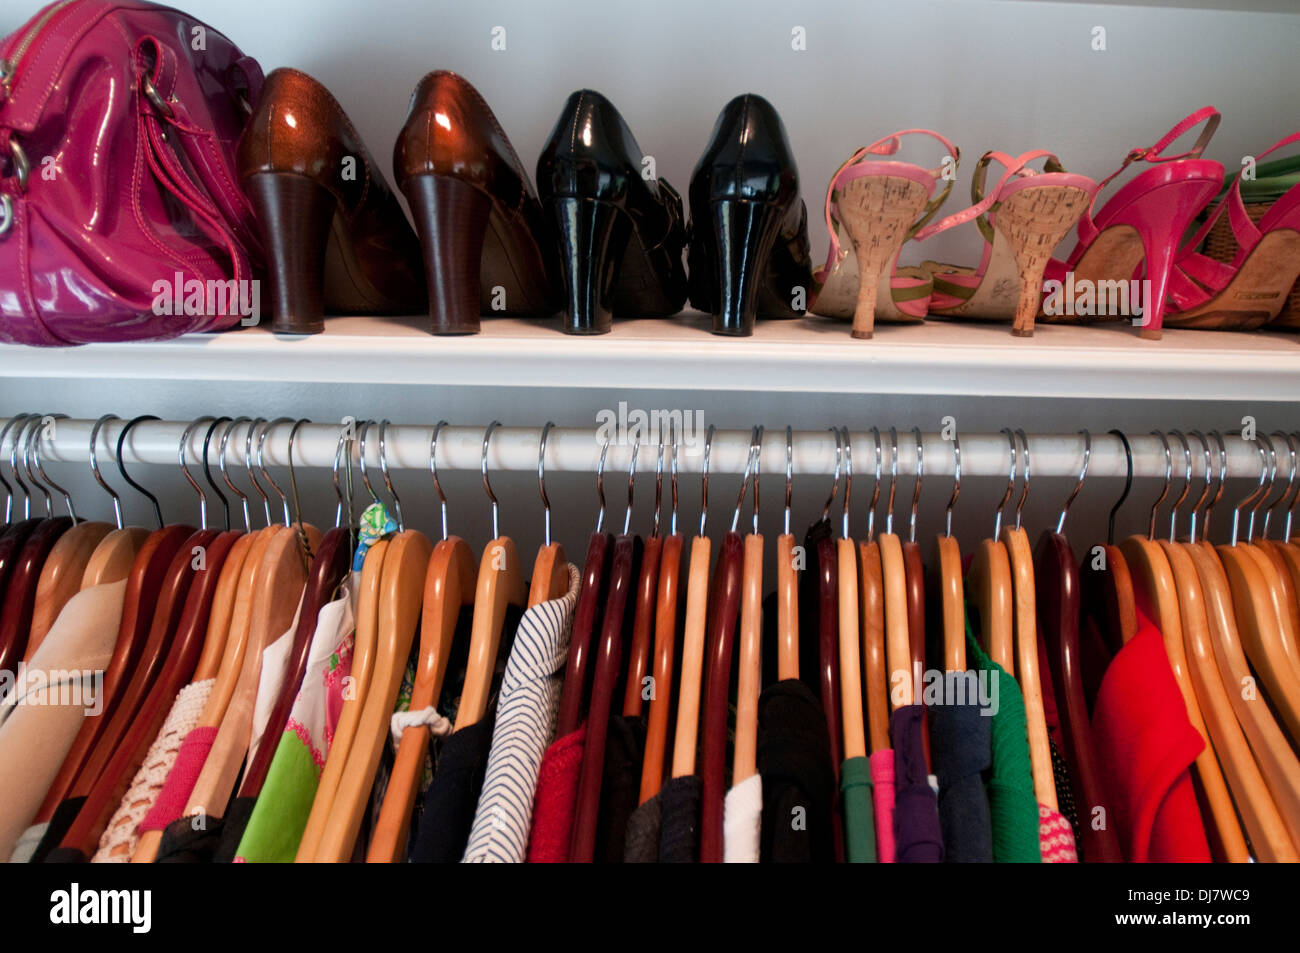 The contents of a woman's closet. - Stock Image